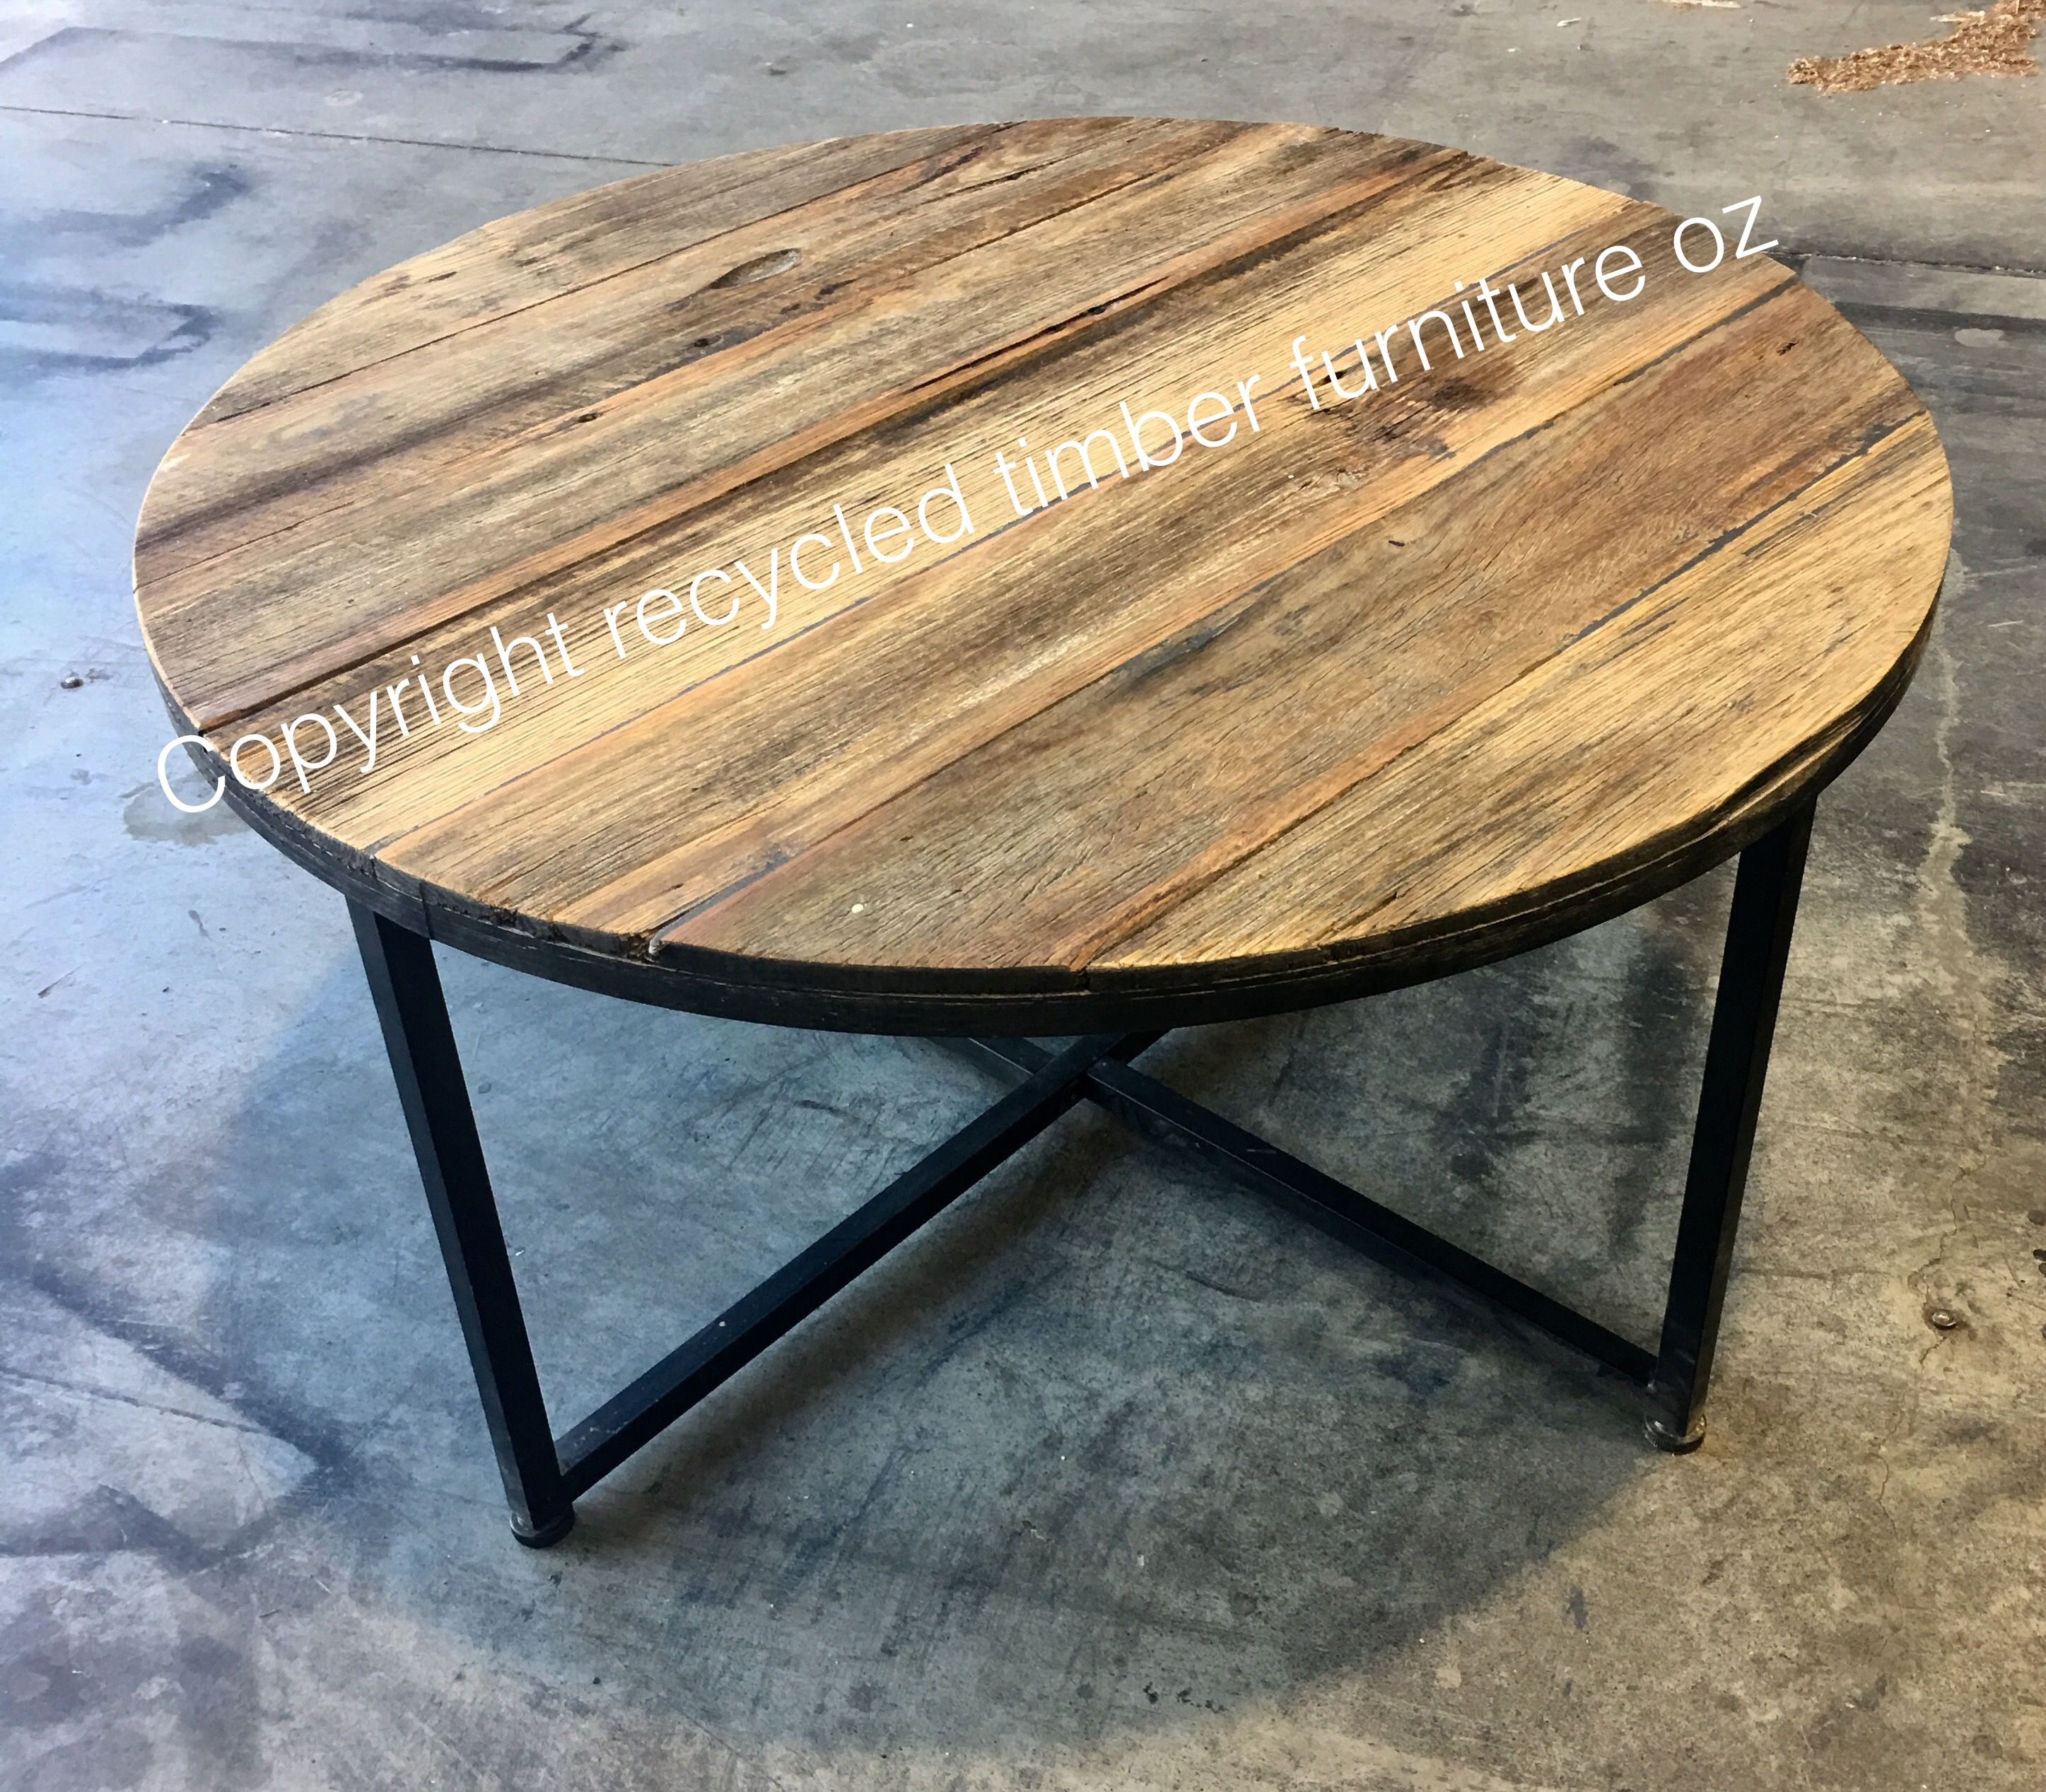 Recycled Timber Palings Industrial Round Coffee Table Made From Recycledtimberfurnitureoz Com Furniture Recycle Timber Coffee Table [ 2535 x 2894 Pixel ]